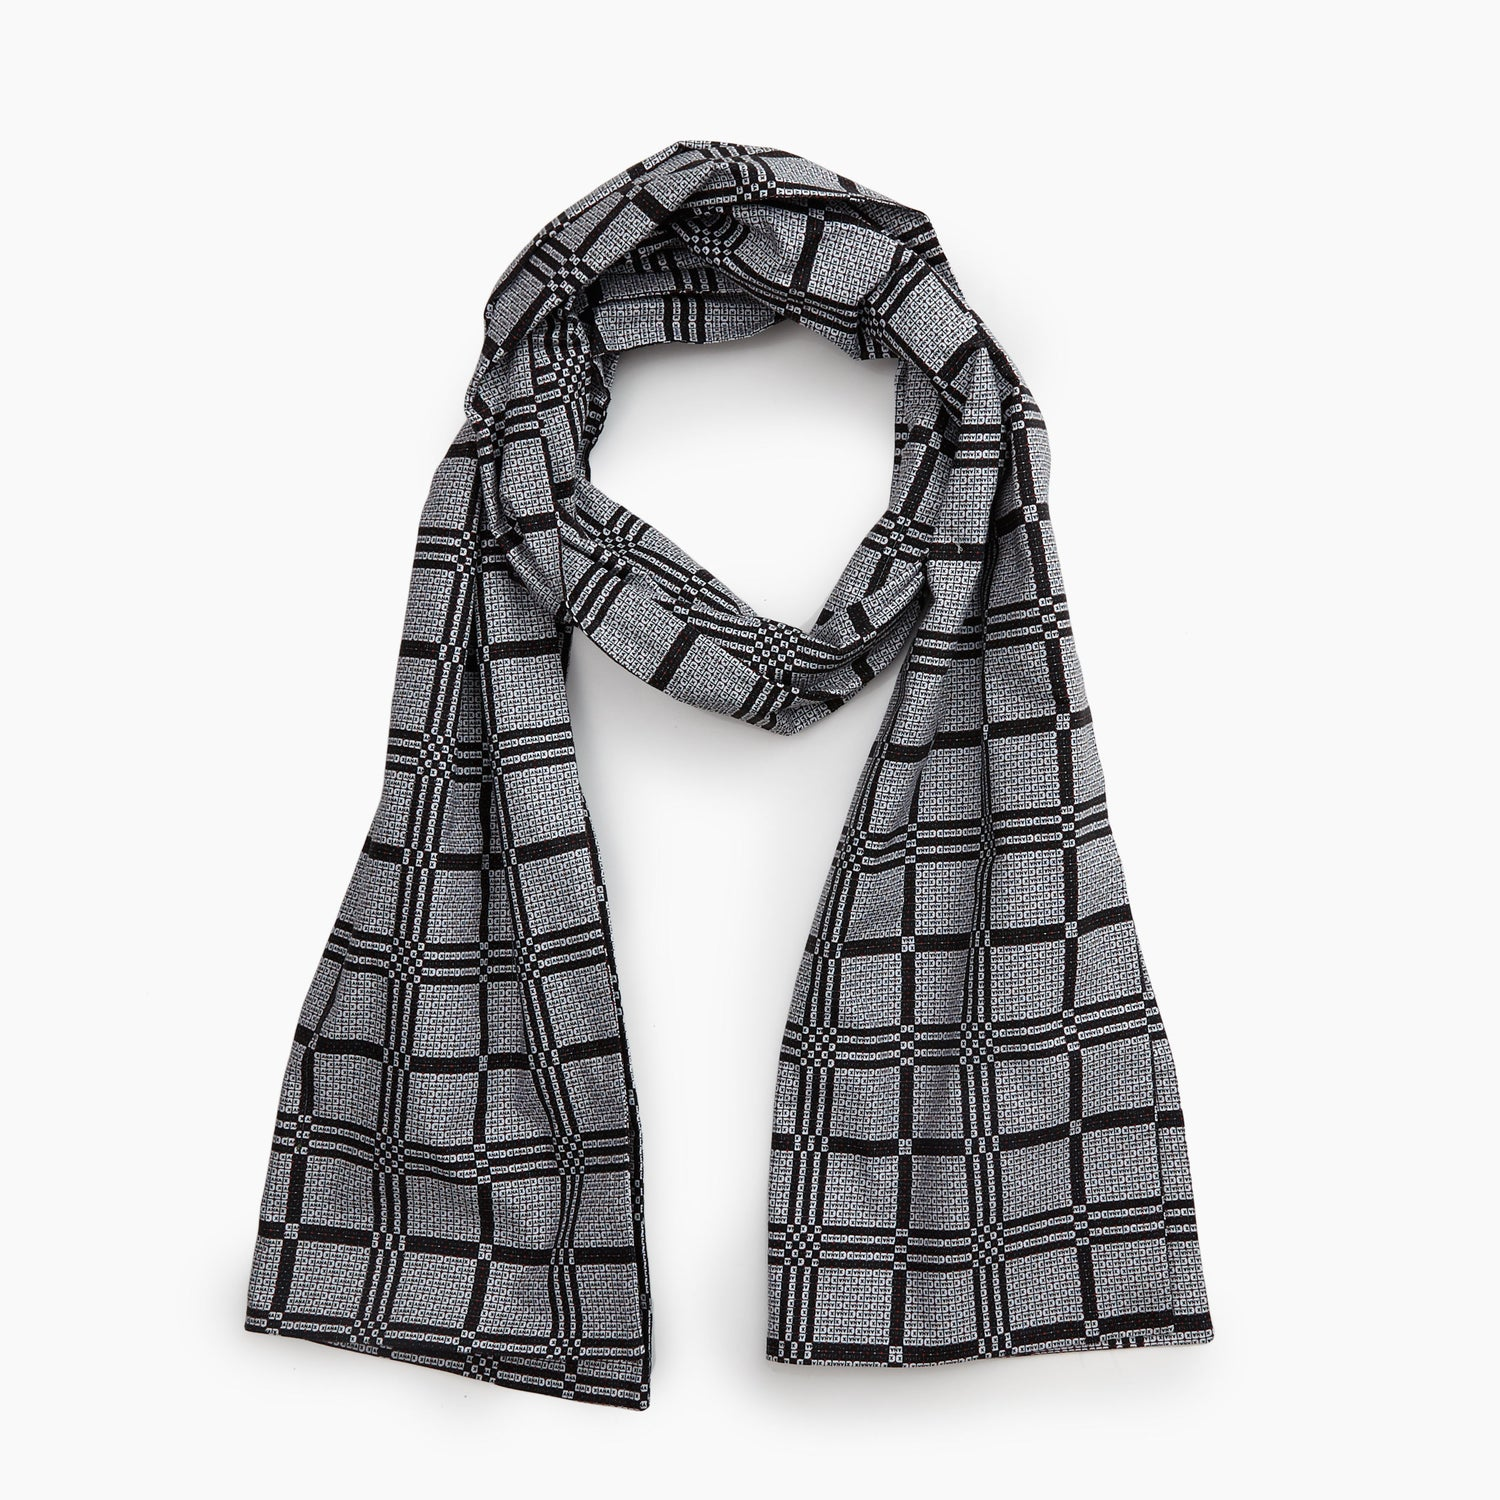 The Xanax Plaid Scarf